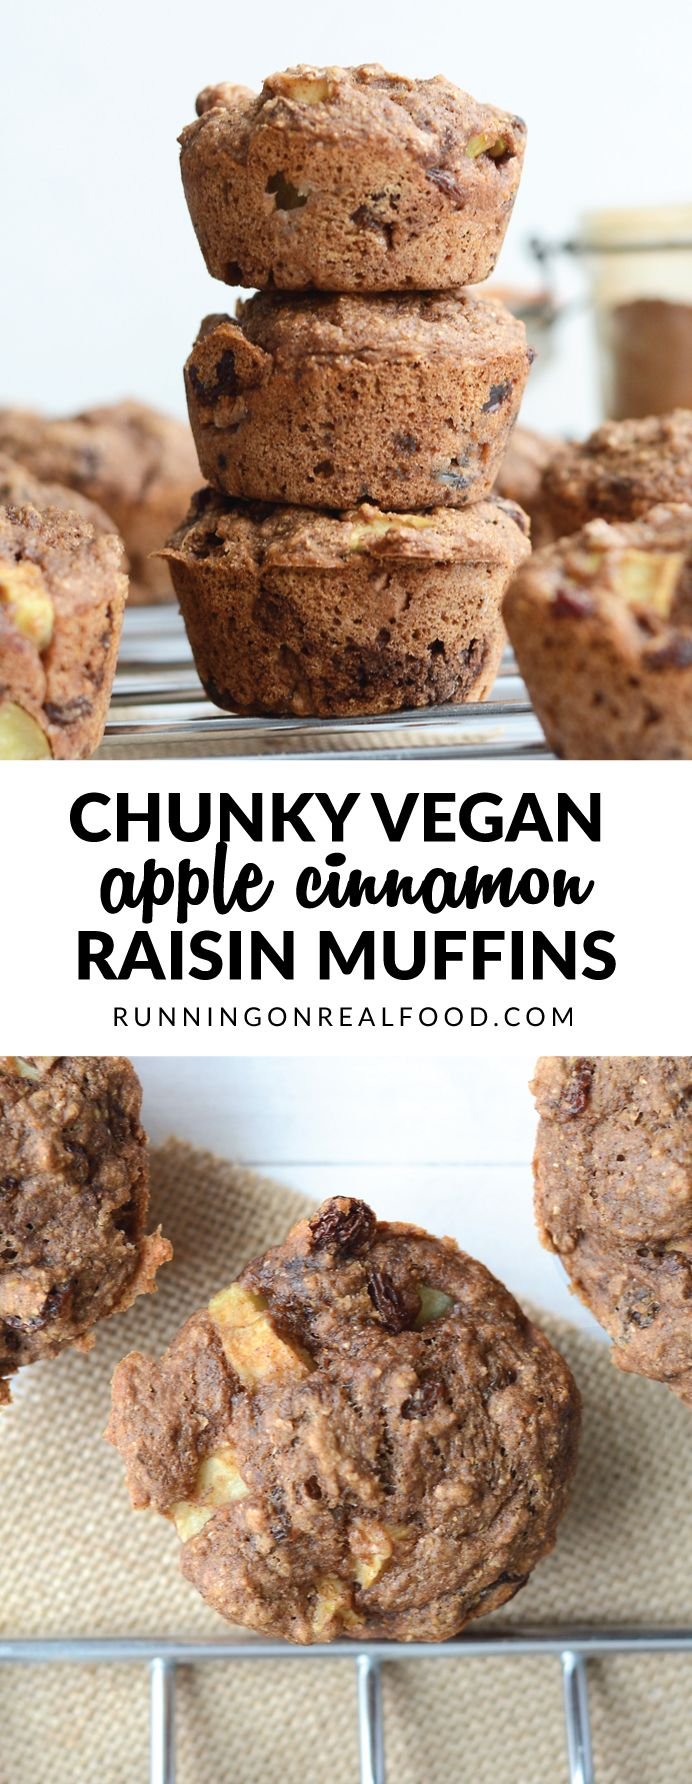 Big chunks of apple, sweet little raisins and all the cinnamon flavour! Low in fat, nice and fluffy...the perfect, sweet vegan snack or dessert! Try them warm from the oven, smothered in almond or coconut butter. So good!!   Recipe: http://runningonrealfood.com/vegan-apple-cinnamon-muffins/